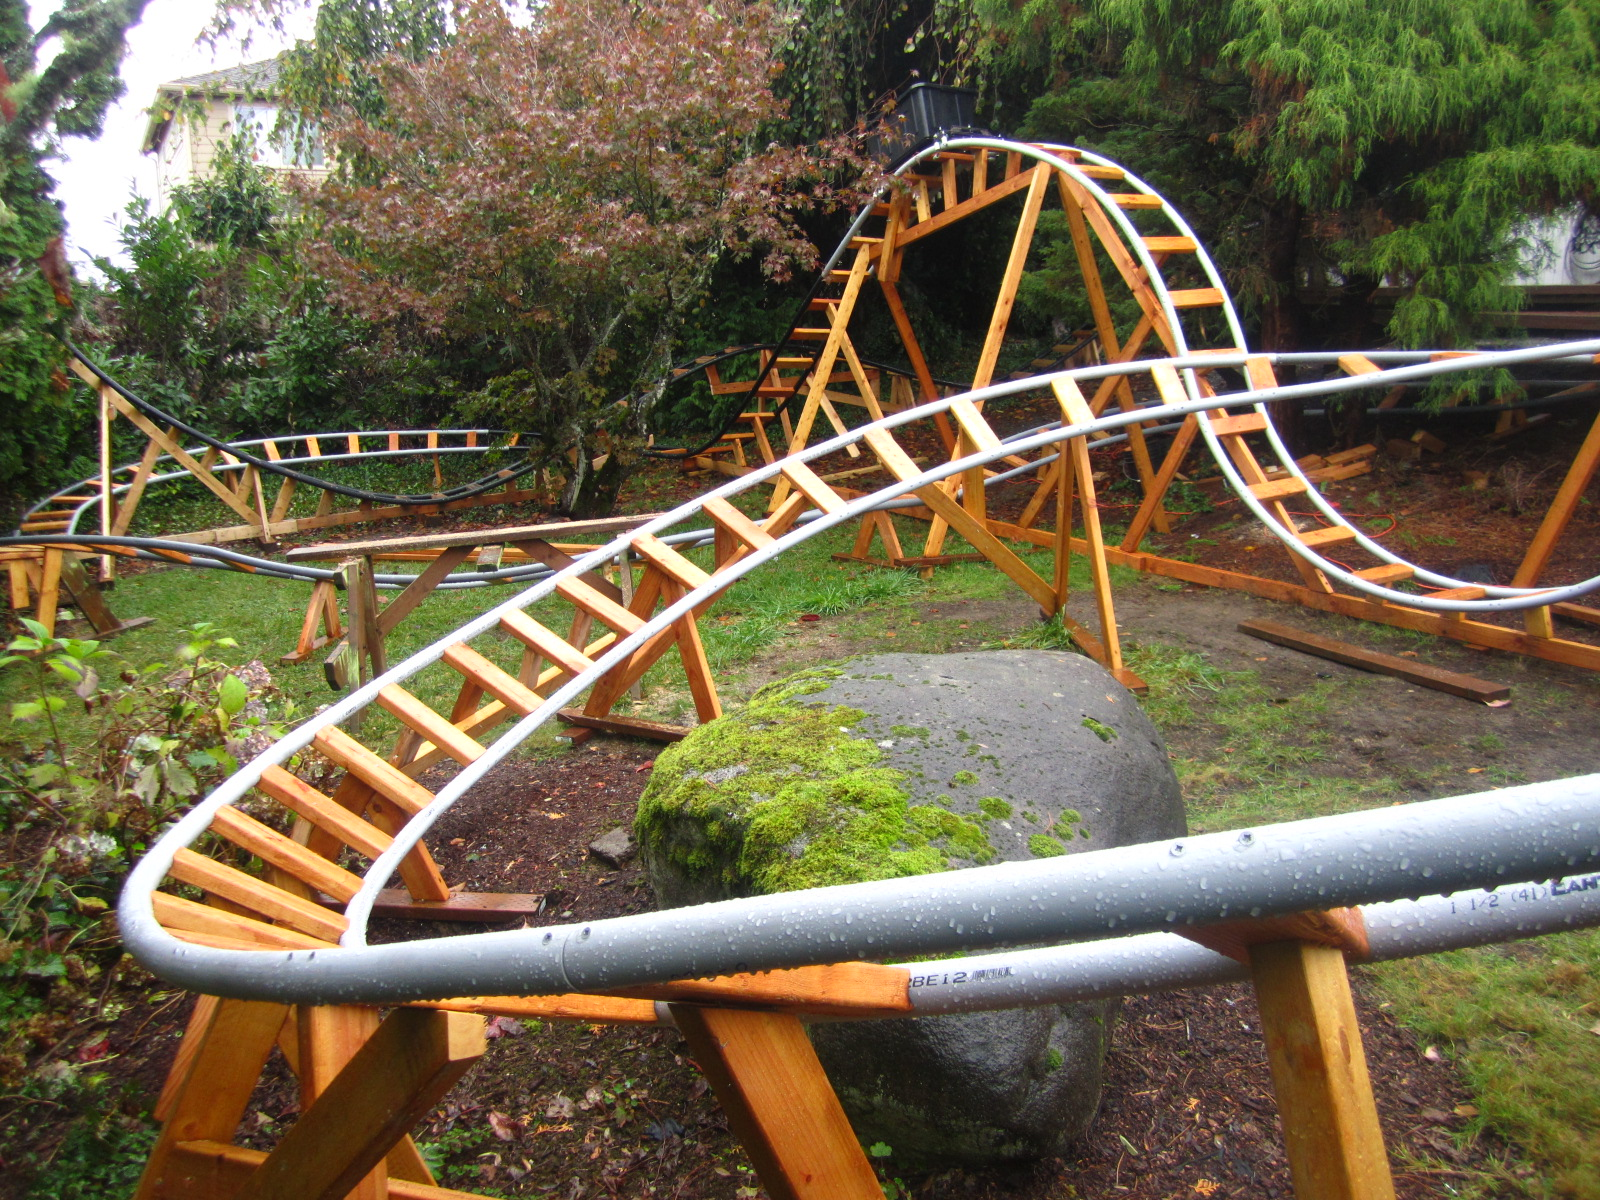 Retired Engineer Built A Roller Coaster For His Grandkids Quizgriz Rollercoaster Diagram Source